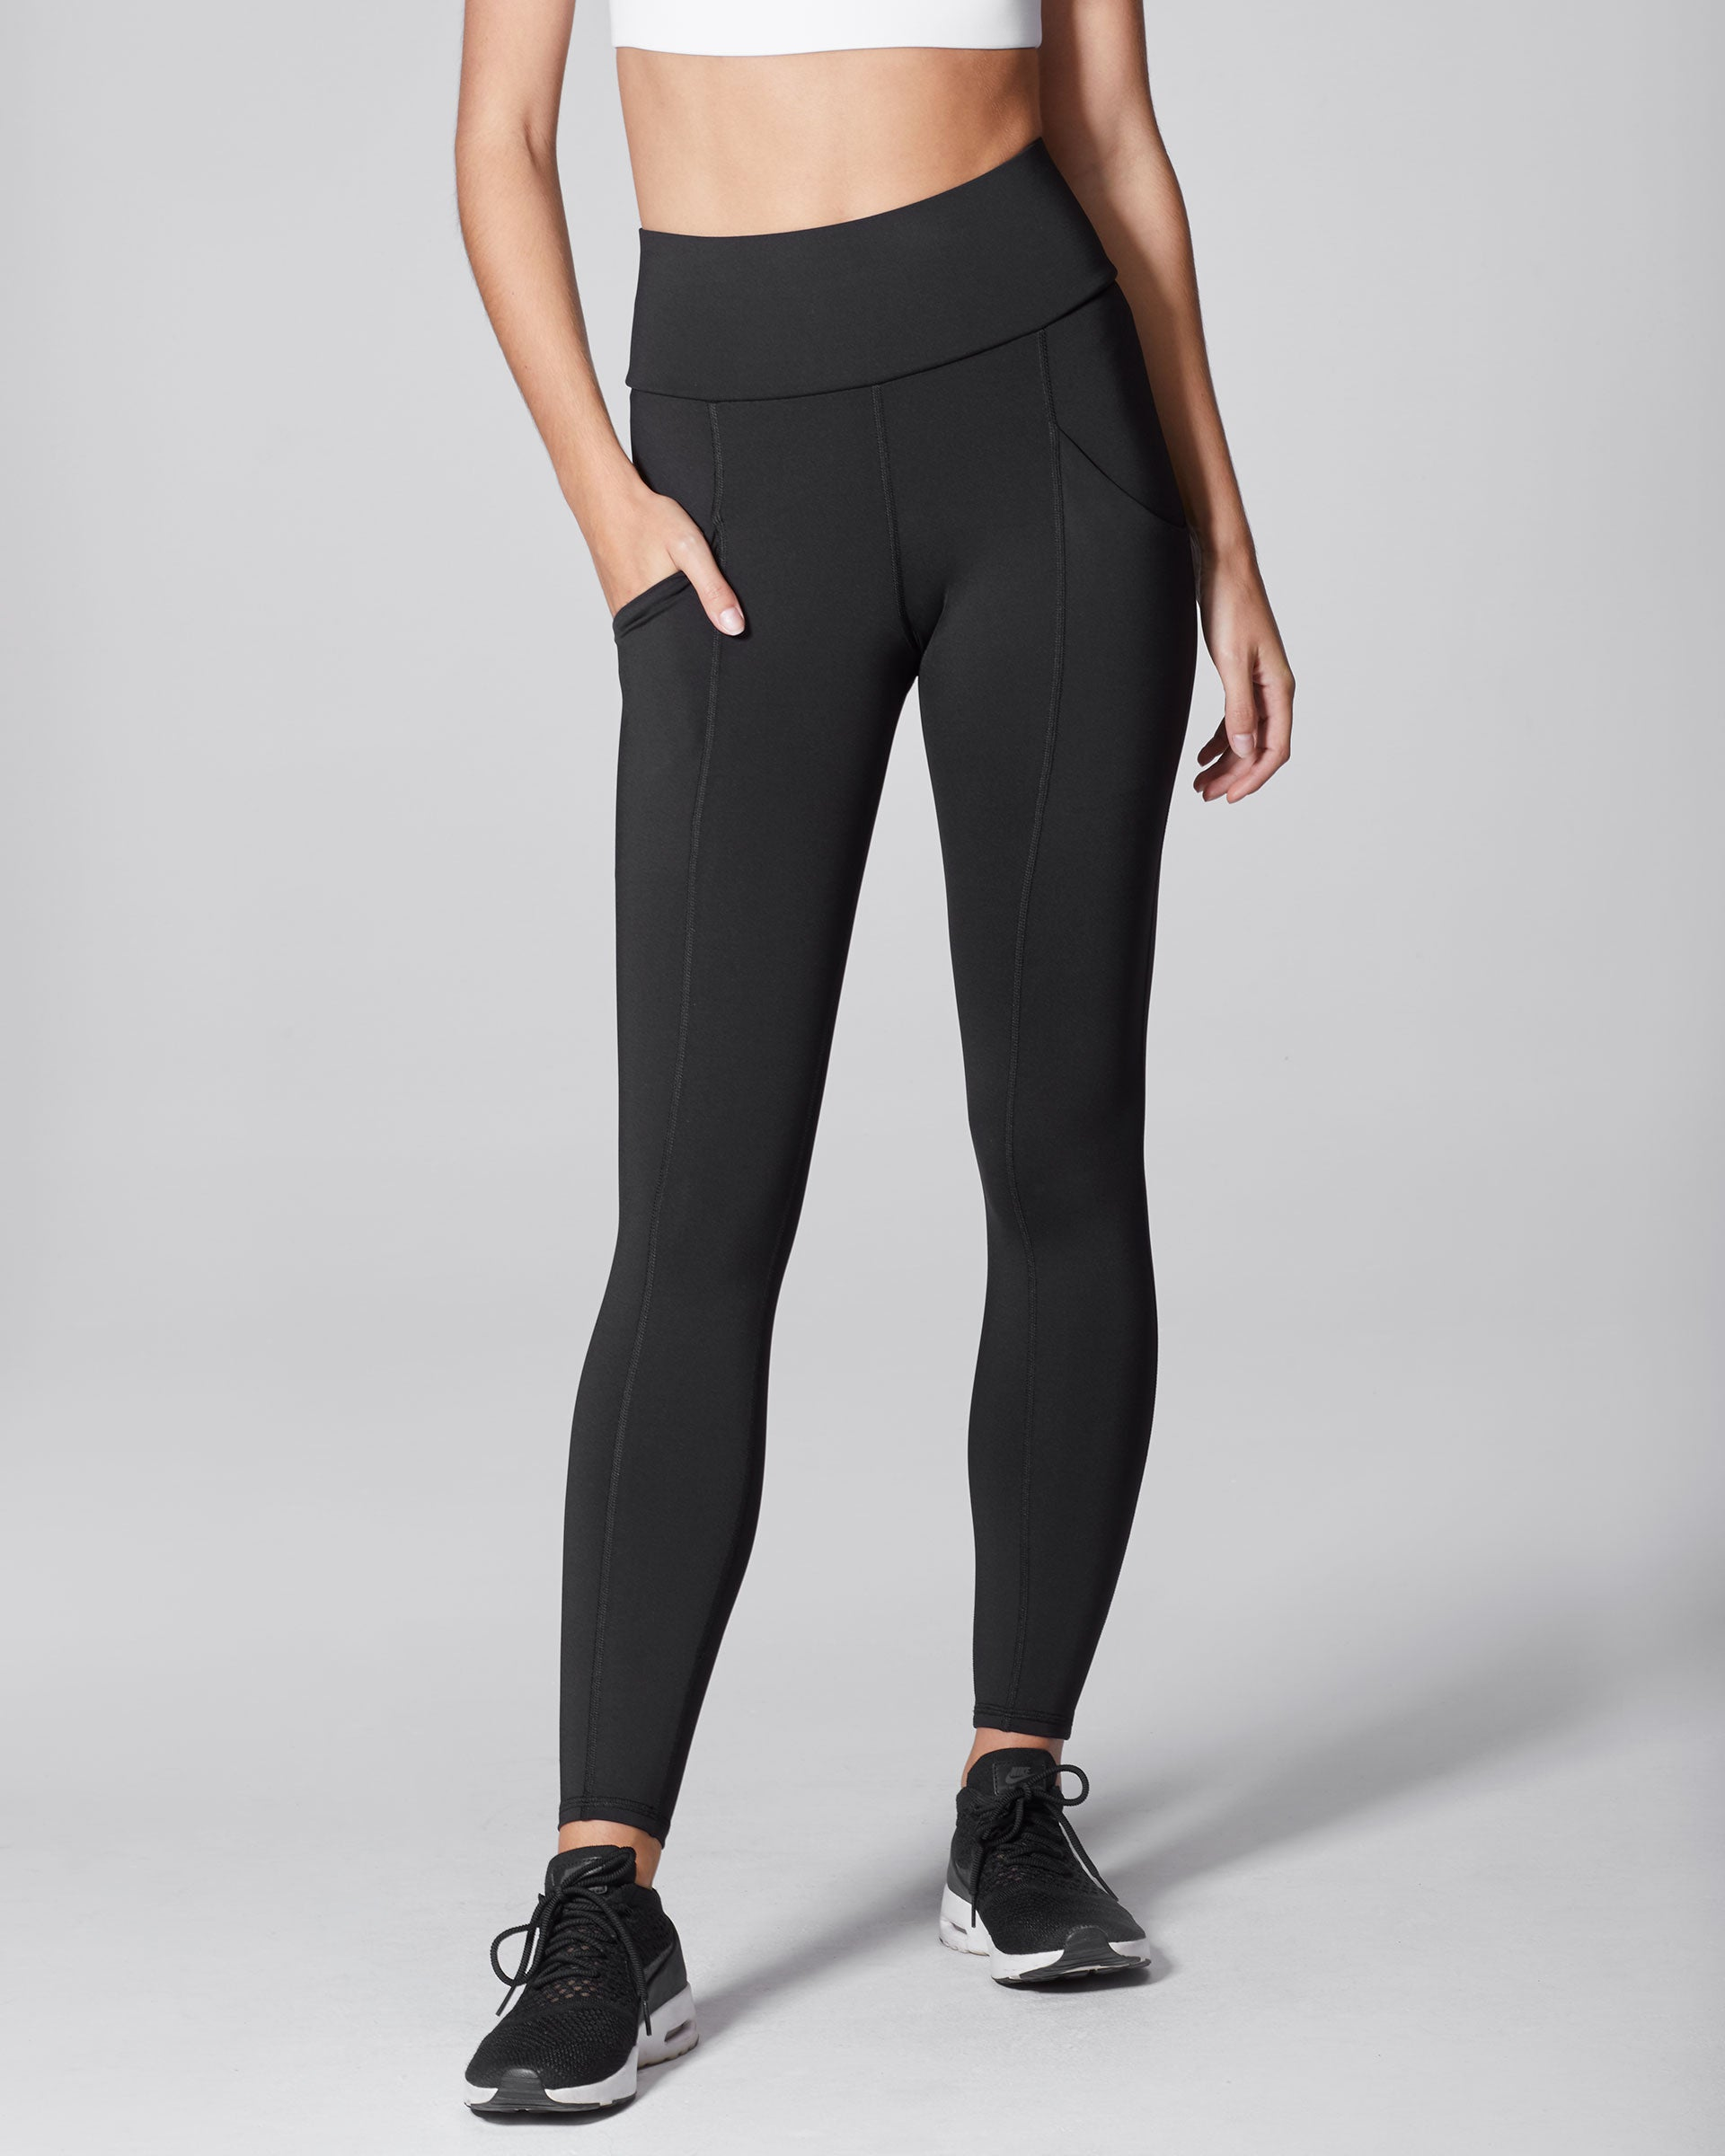 fusion-high-waisted-pocket-legging-black